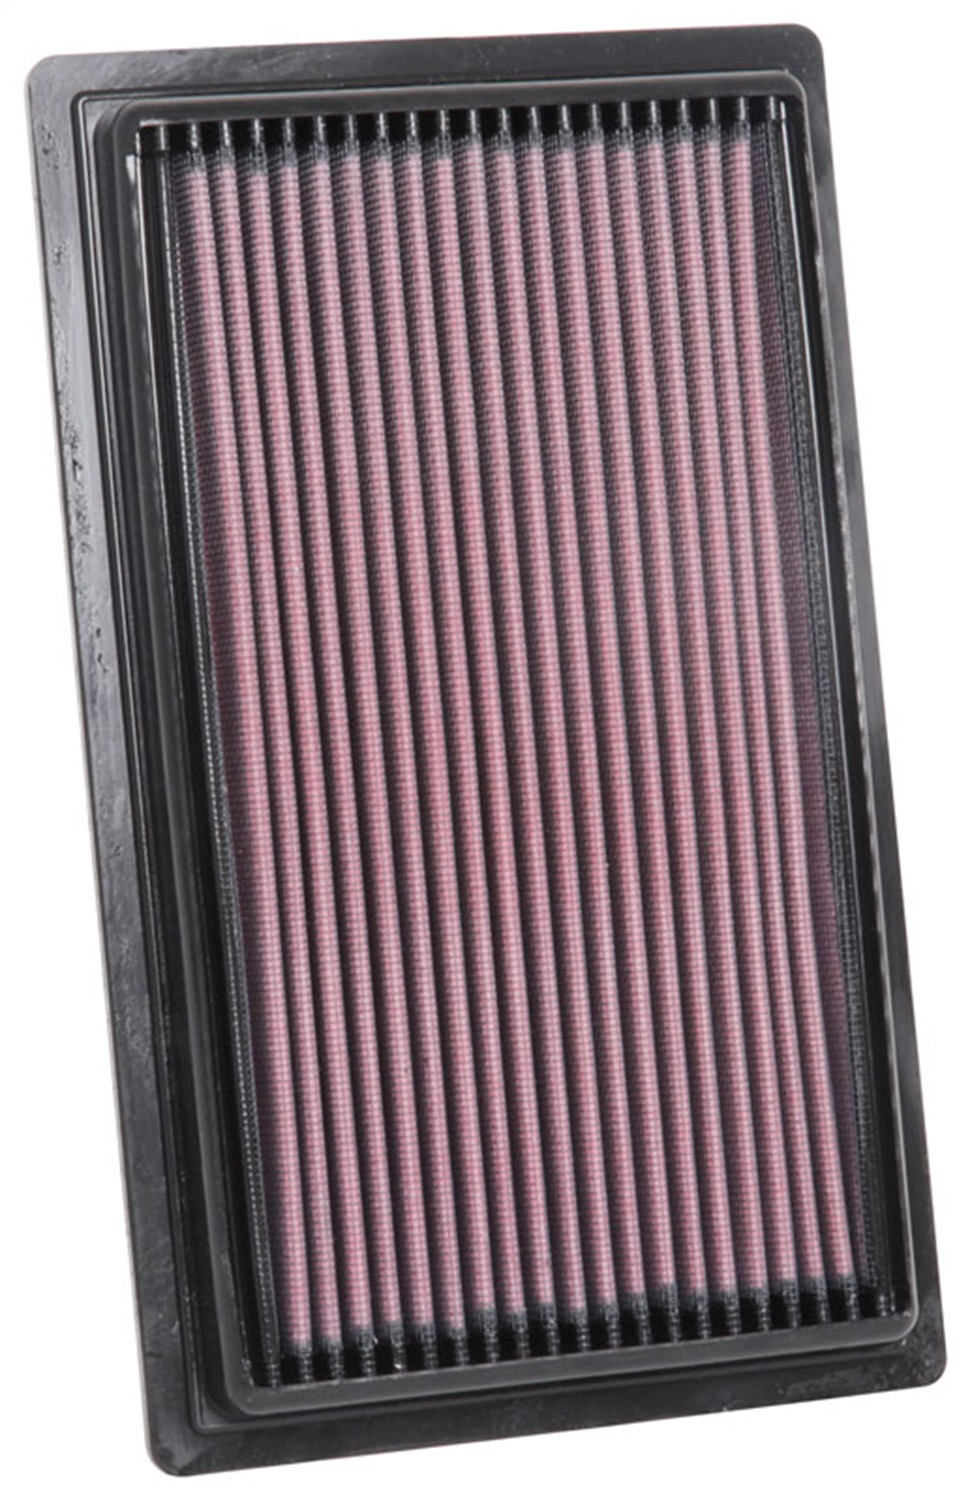 K&N Filters 33-2075 Air Filter Fits 99-08 Baja Forester Impreza Outback 33-2075